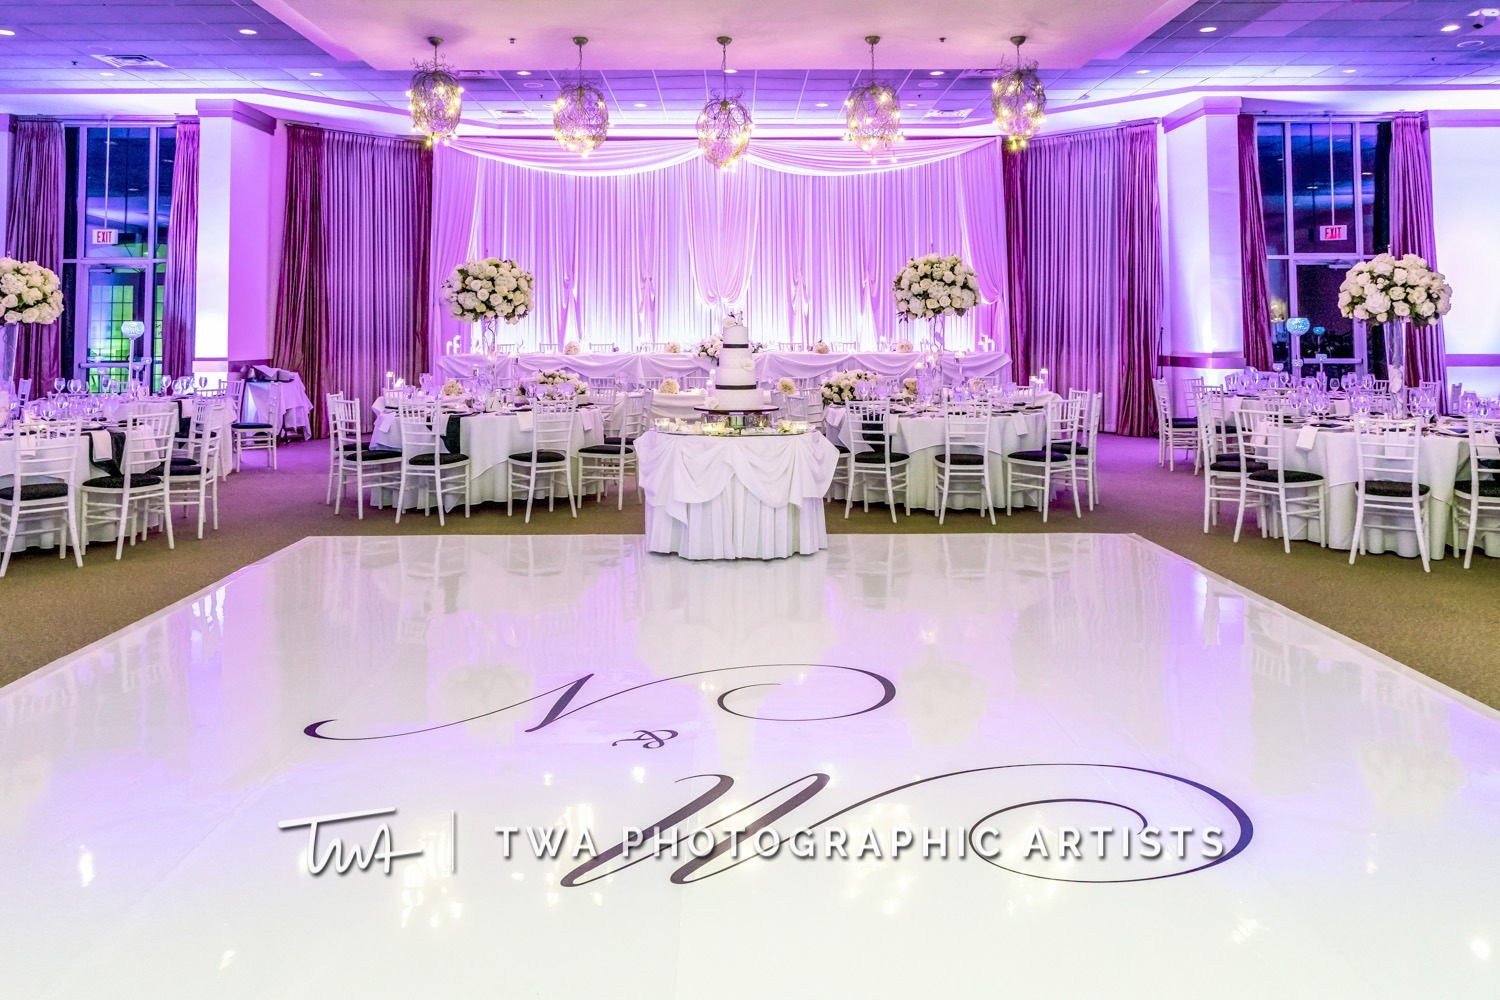 Chicago-Wedding-Photographer-TWA-Photographic-Artists-Belvedere-Banquets_Anast_Campanella_MiC_ME-0576